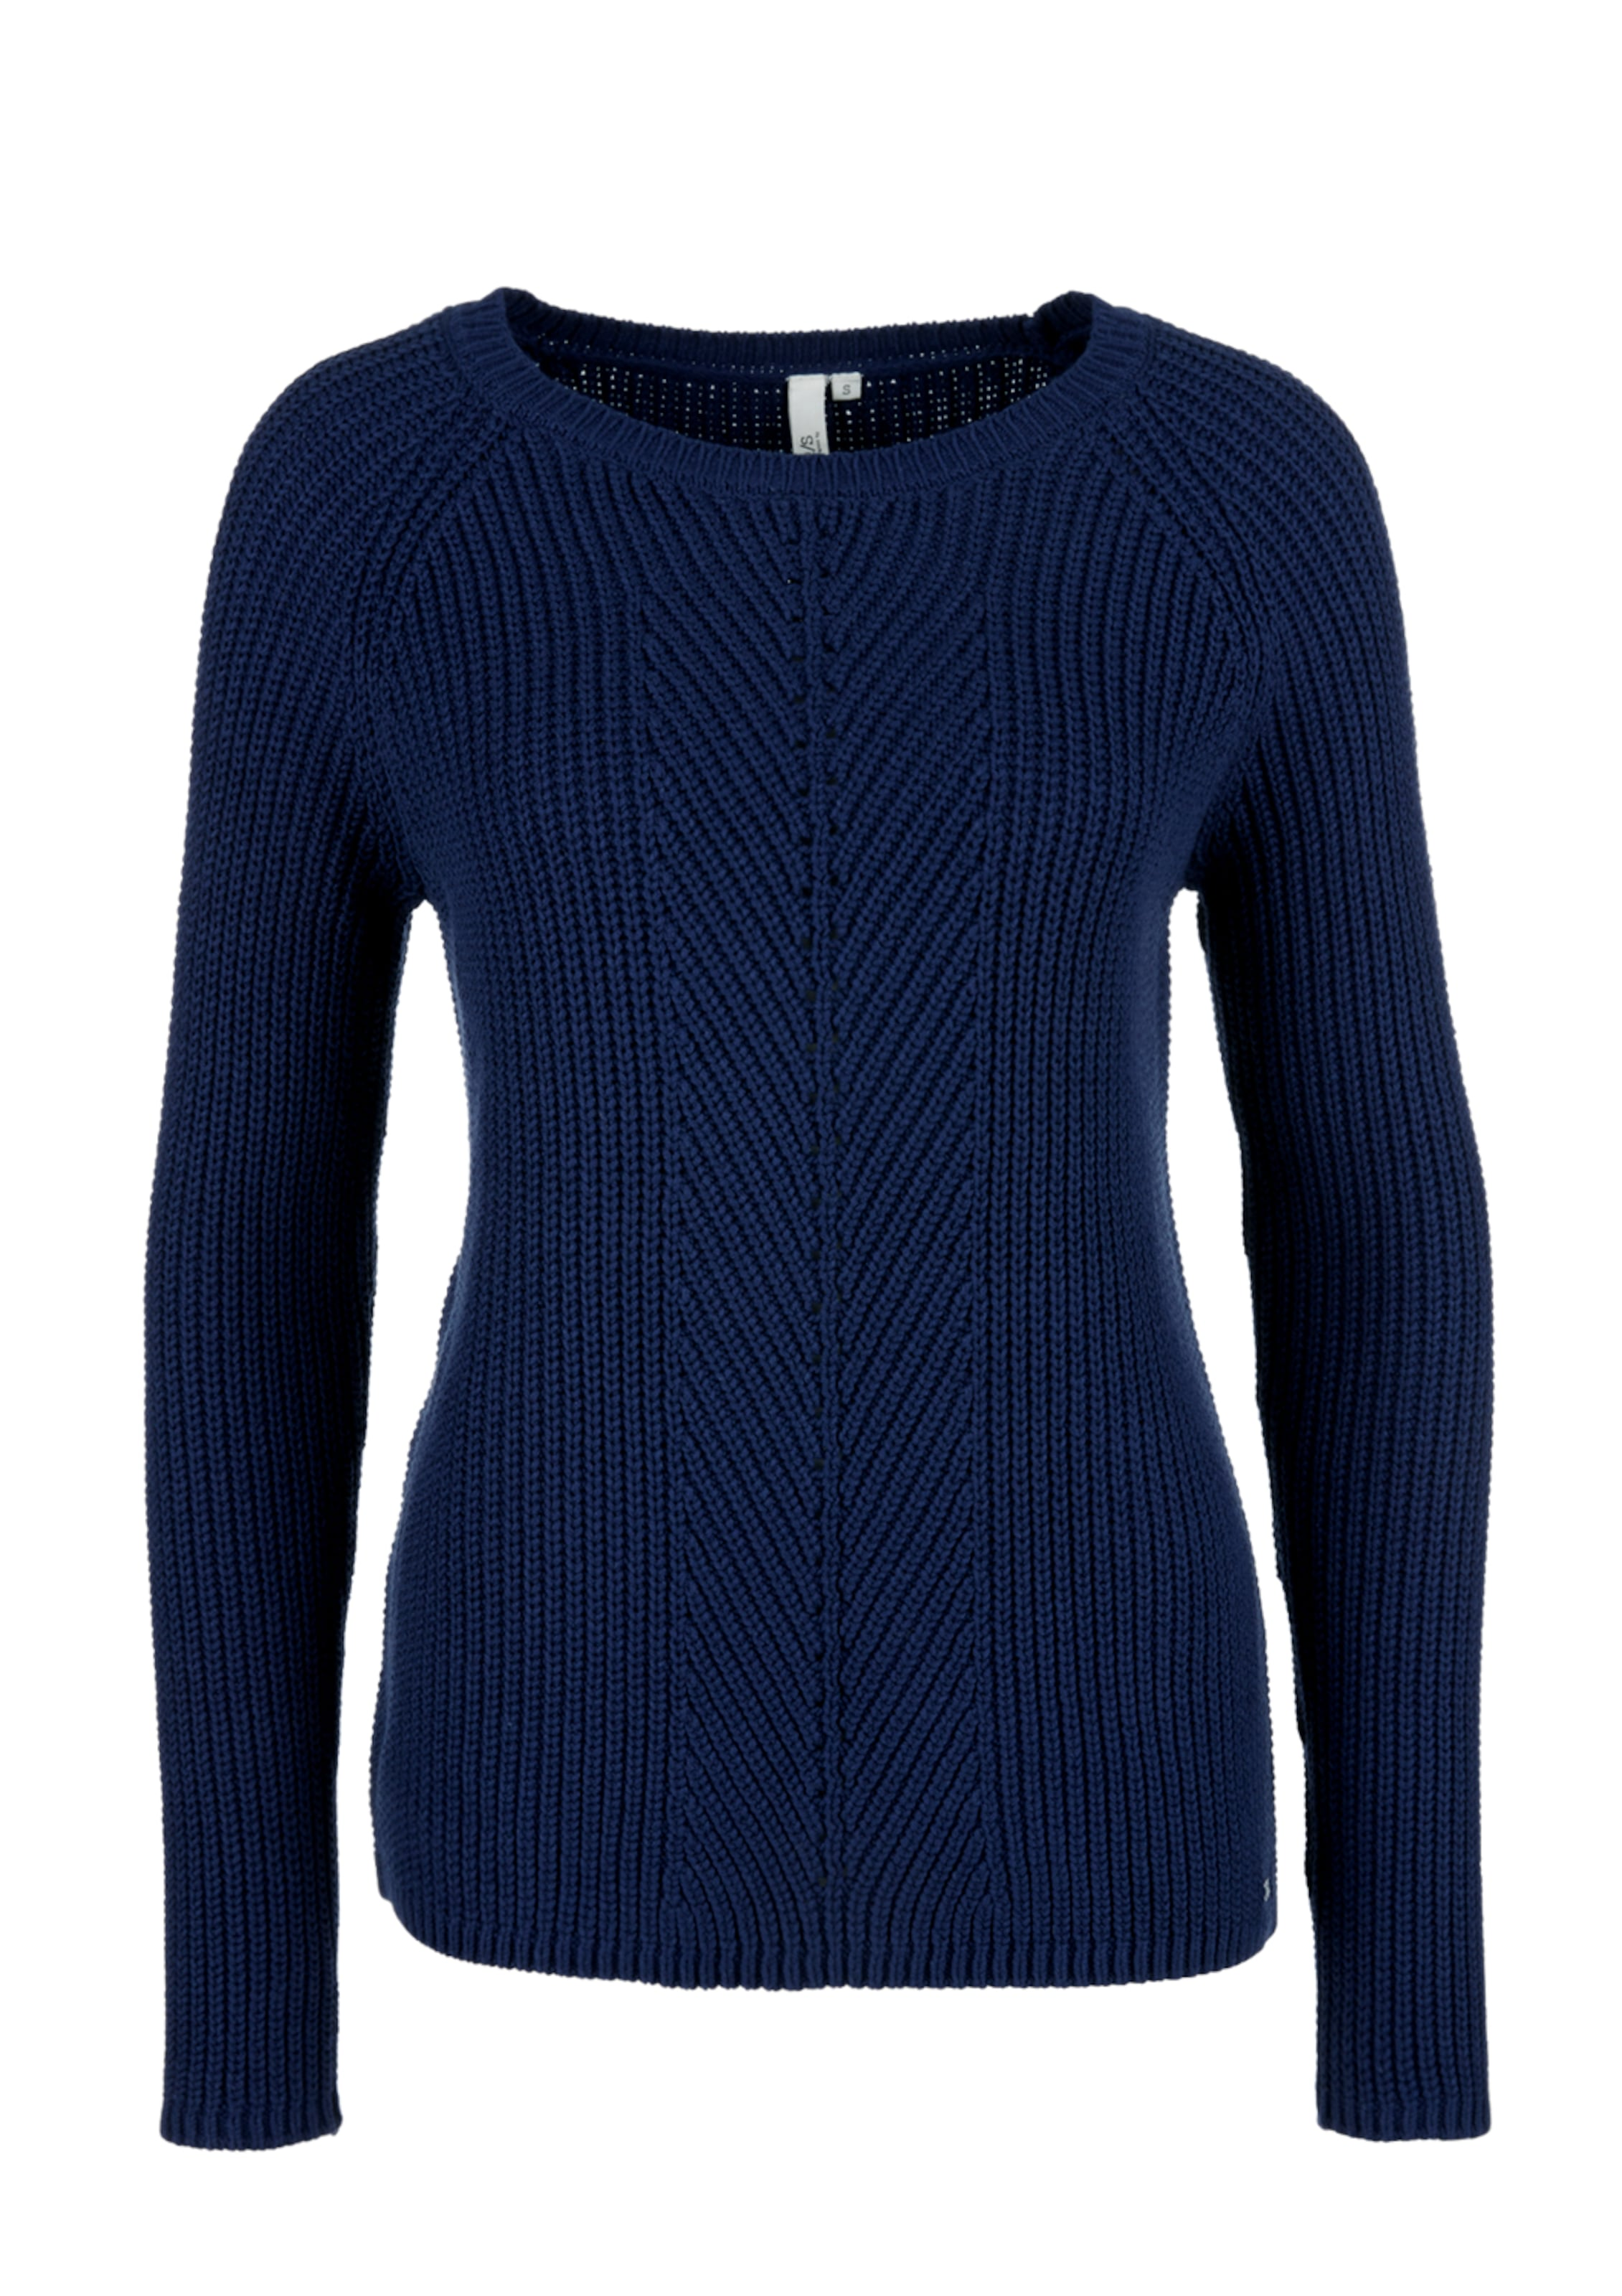 Designed Dunkelblau In s By Pullover Q mN8nw0